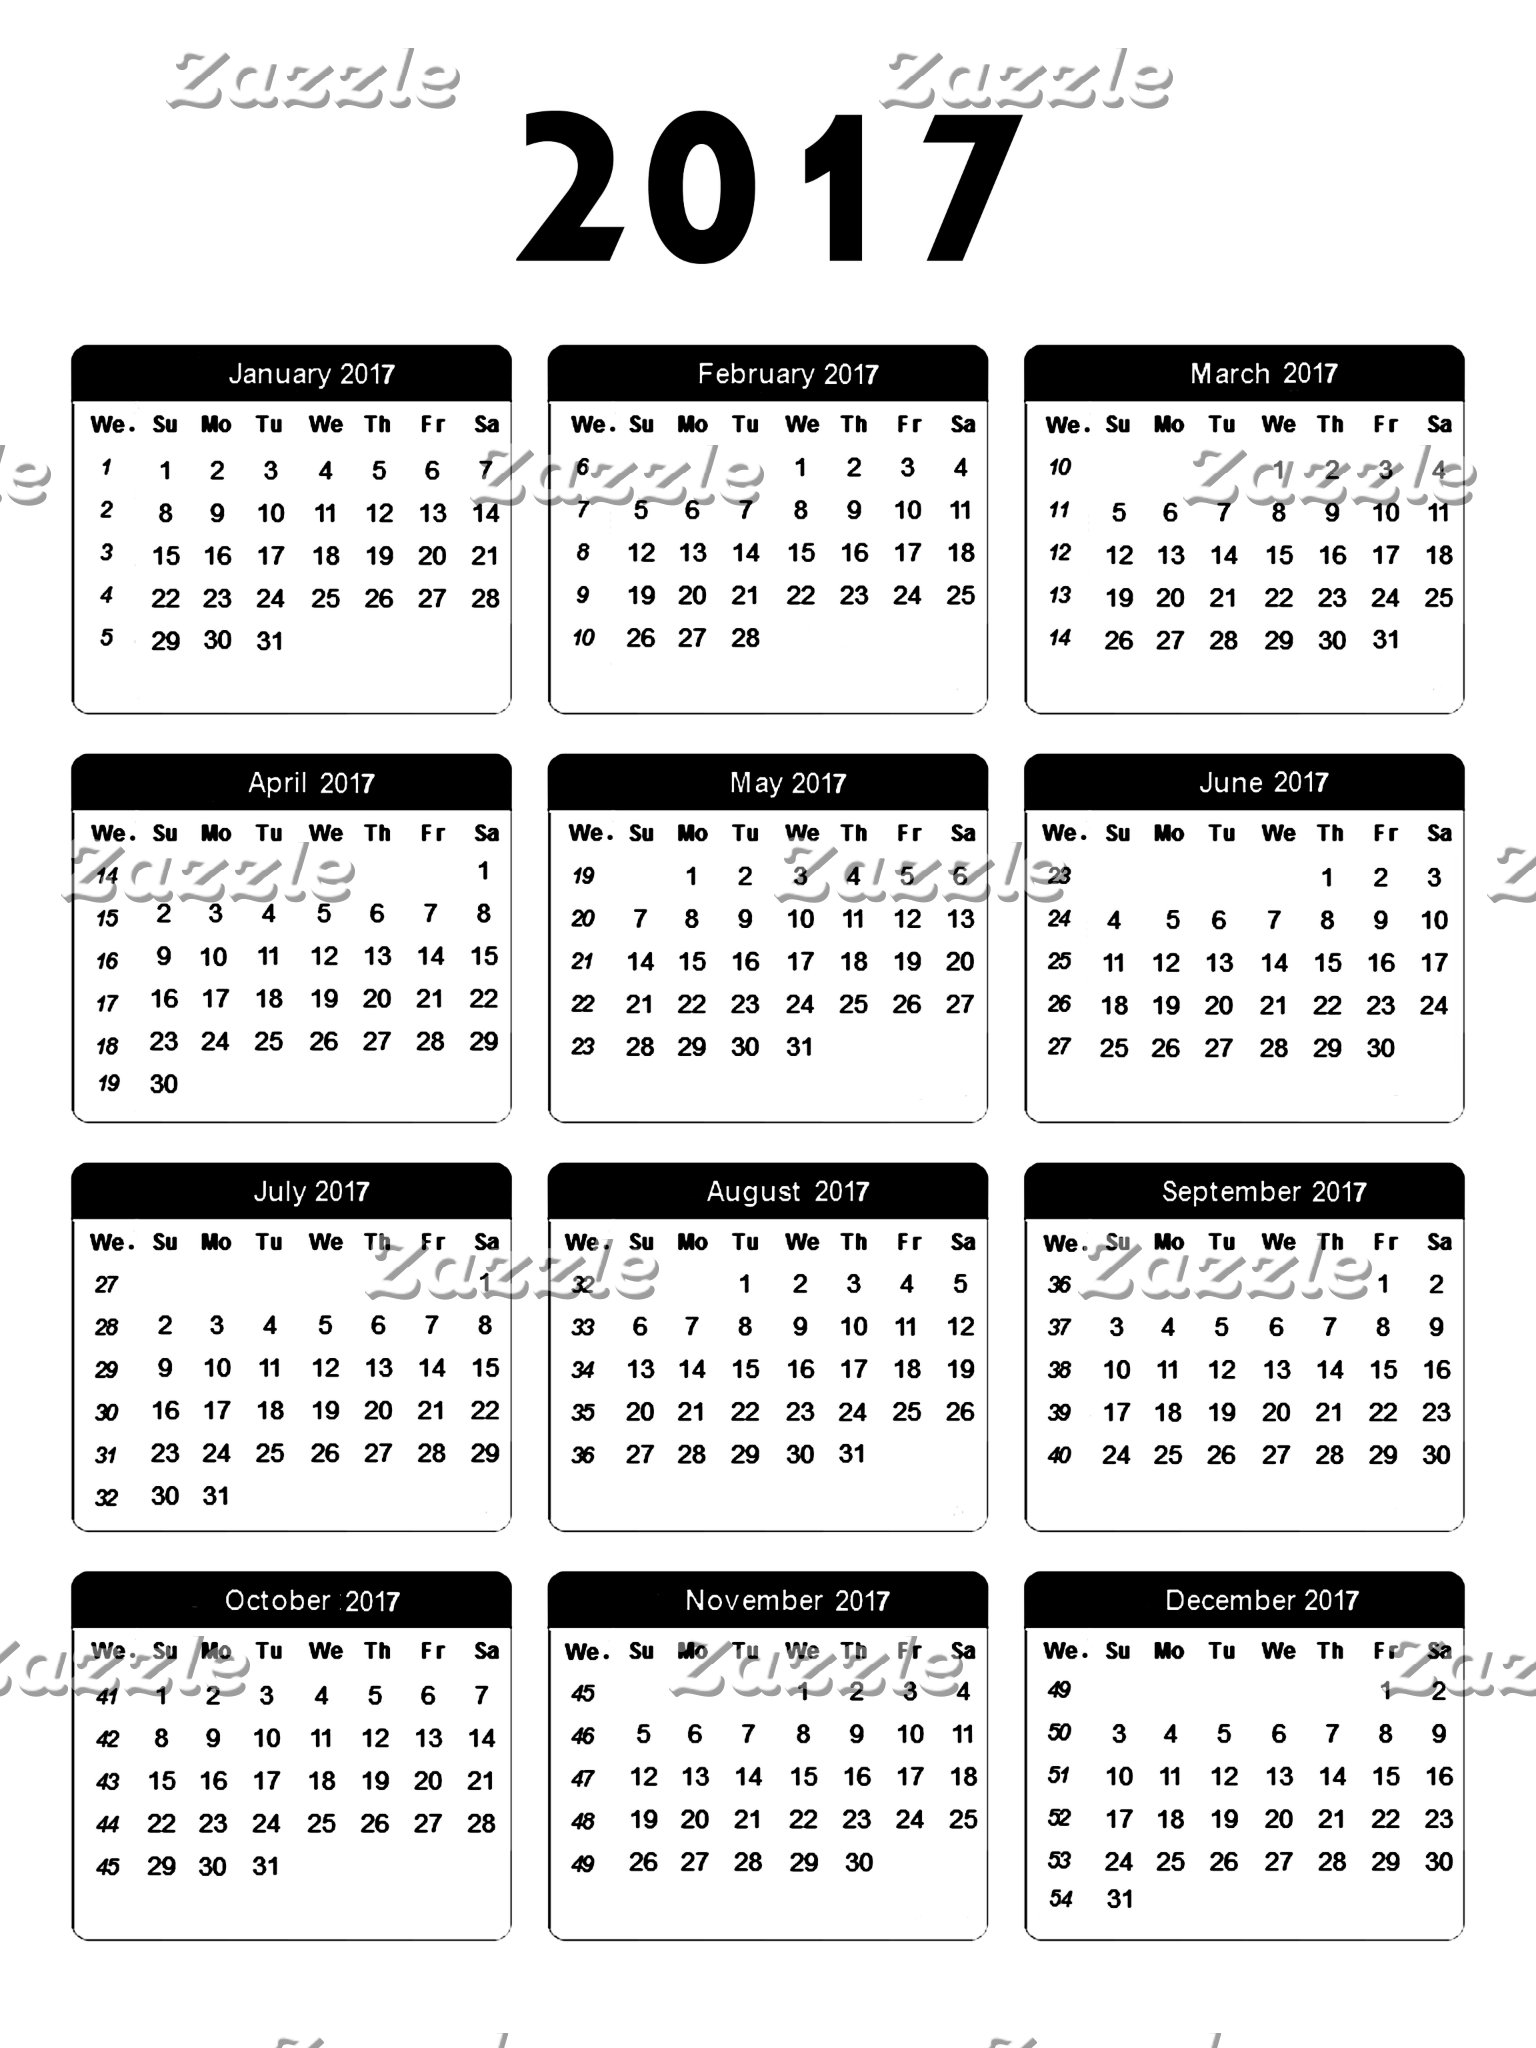 2017 Calendar jGibney The MUSEUM Zazzle